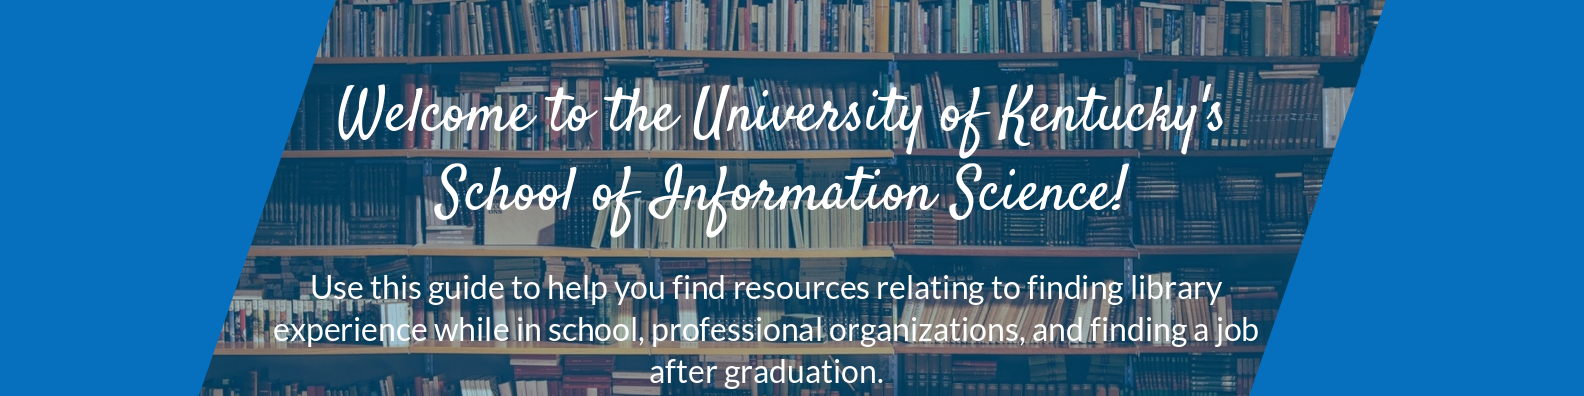 Welcome to the University of Kentucky's School of Information Science! This guide can help you find resources relating to finding library experience while in school, professional organizations, and finding a job after graduation.